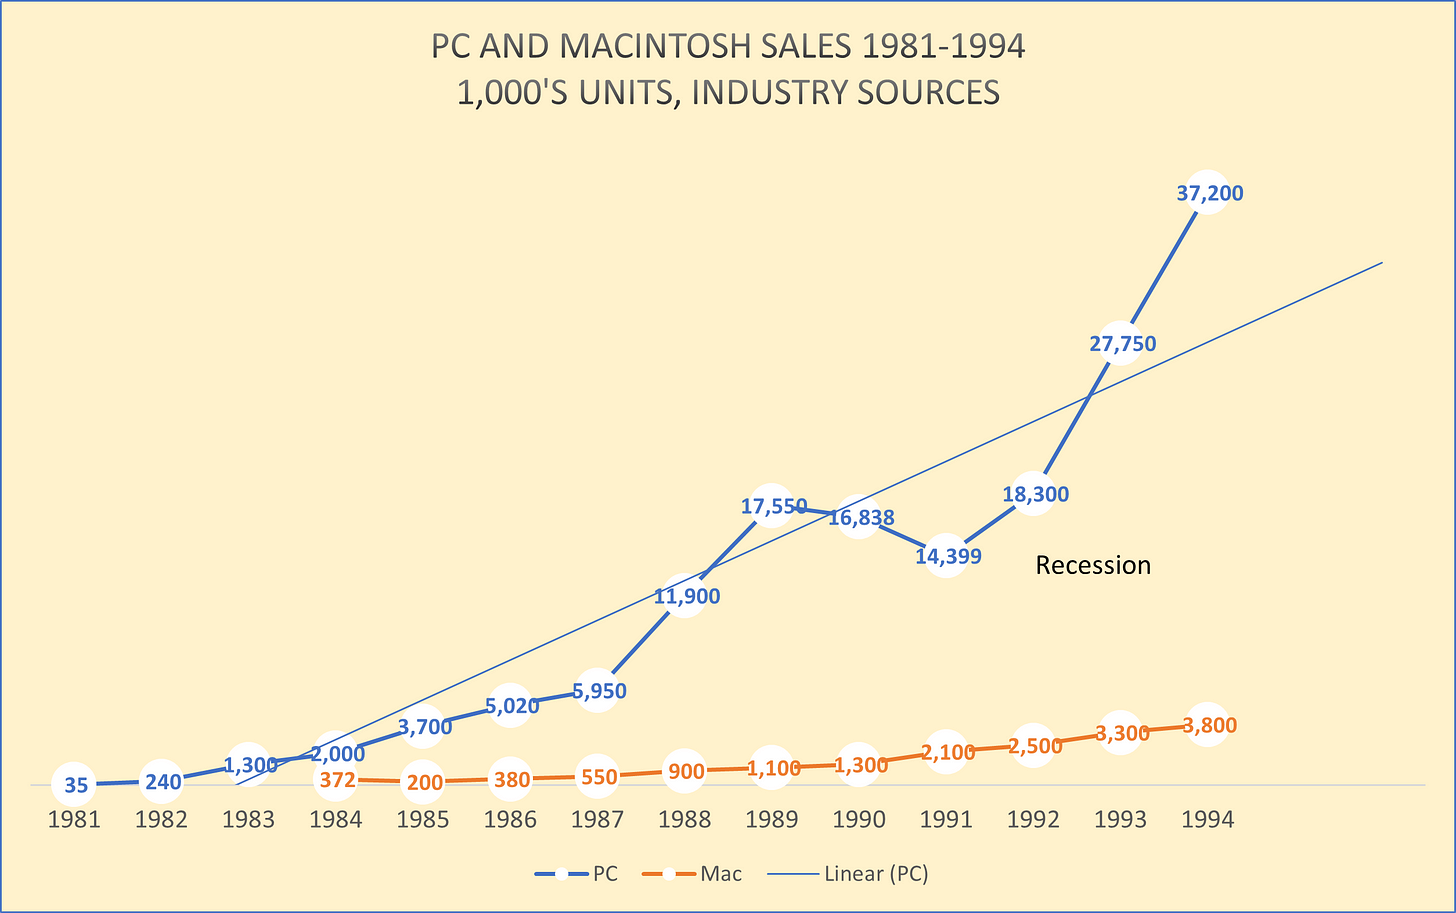 Chart PC and Mac sales: Year	PC	Mac 1981	 35 	 1982	 240 	 1983	 1,300 	 1984	 2,000 	 372  1985	 3,700 	 200  1986	 5,020 	 380  1987	 5,950 	 550  1988	 11,900 	 900  1989	 17,550 	 1,100  1990	 16,838 	 1,300  1991	 14,399 	 2,100  1992	 18,300 	 2,500  1993	 27,750 	 3,300  1994	 37,200 	 3,800